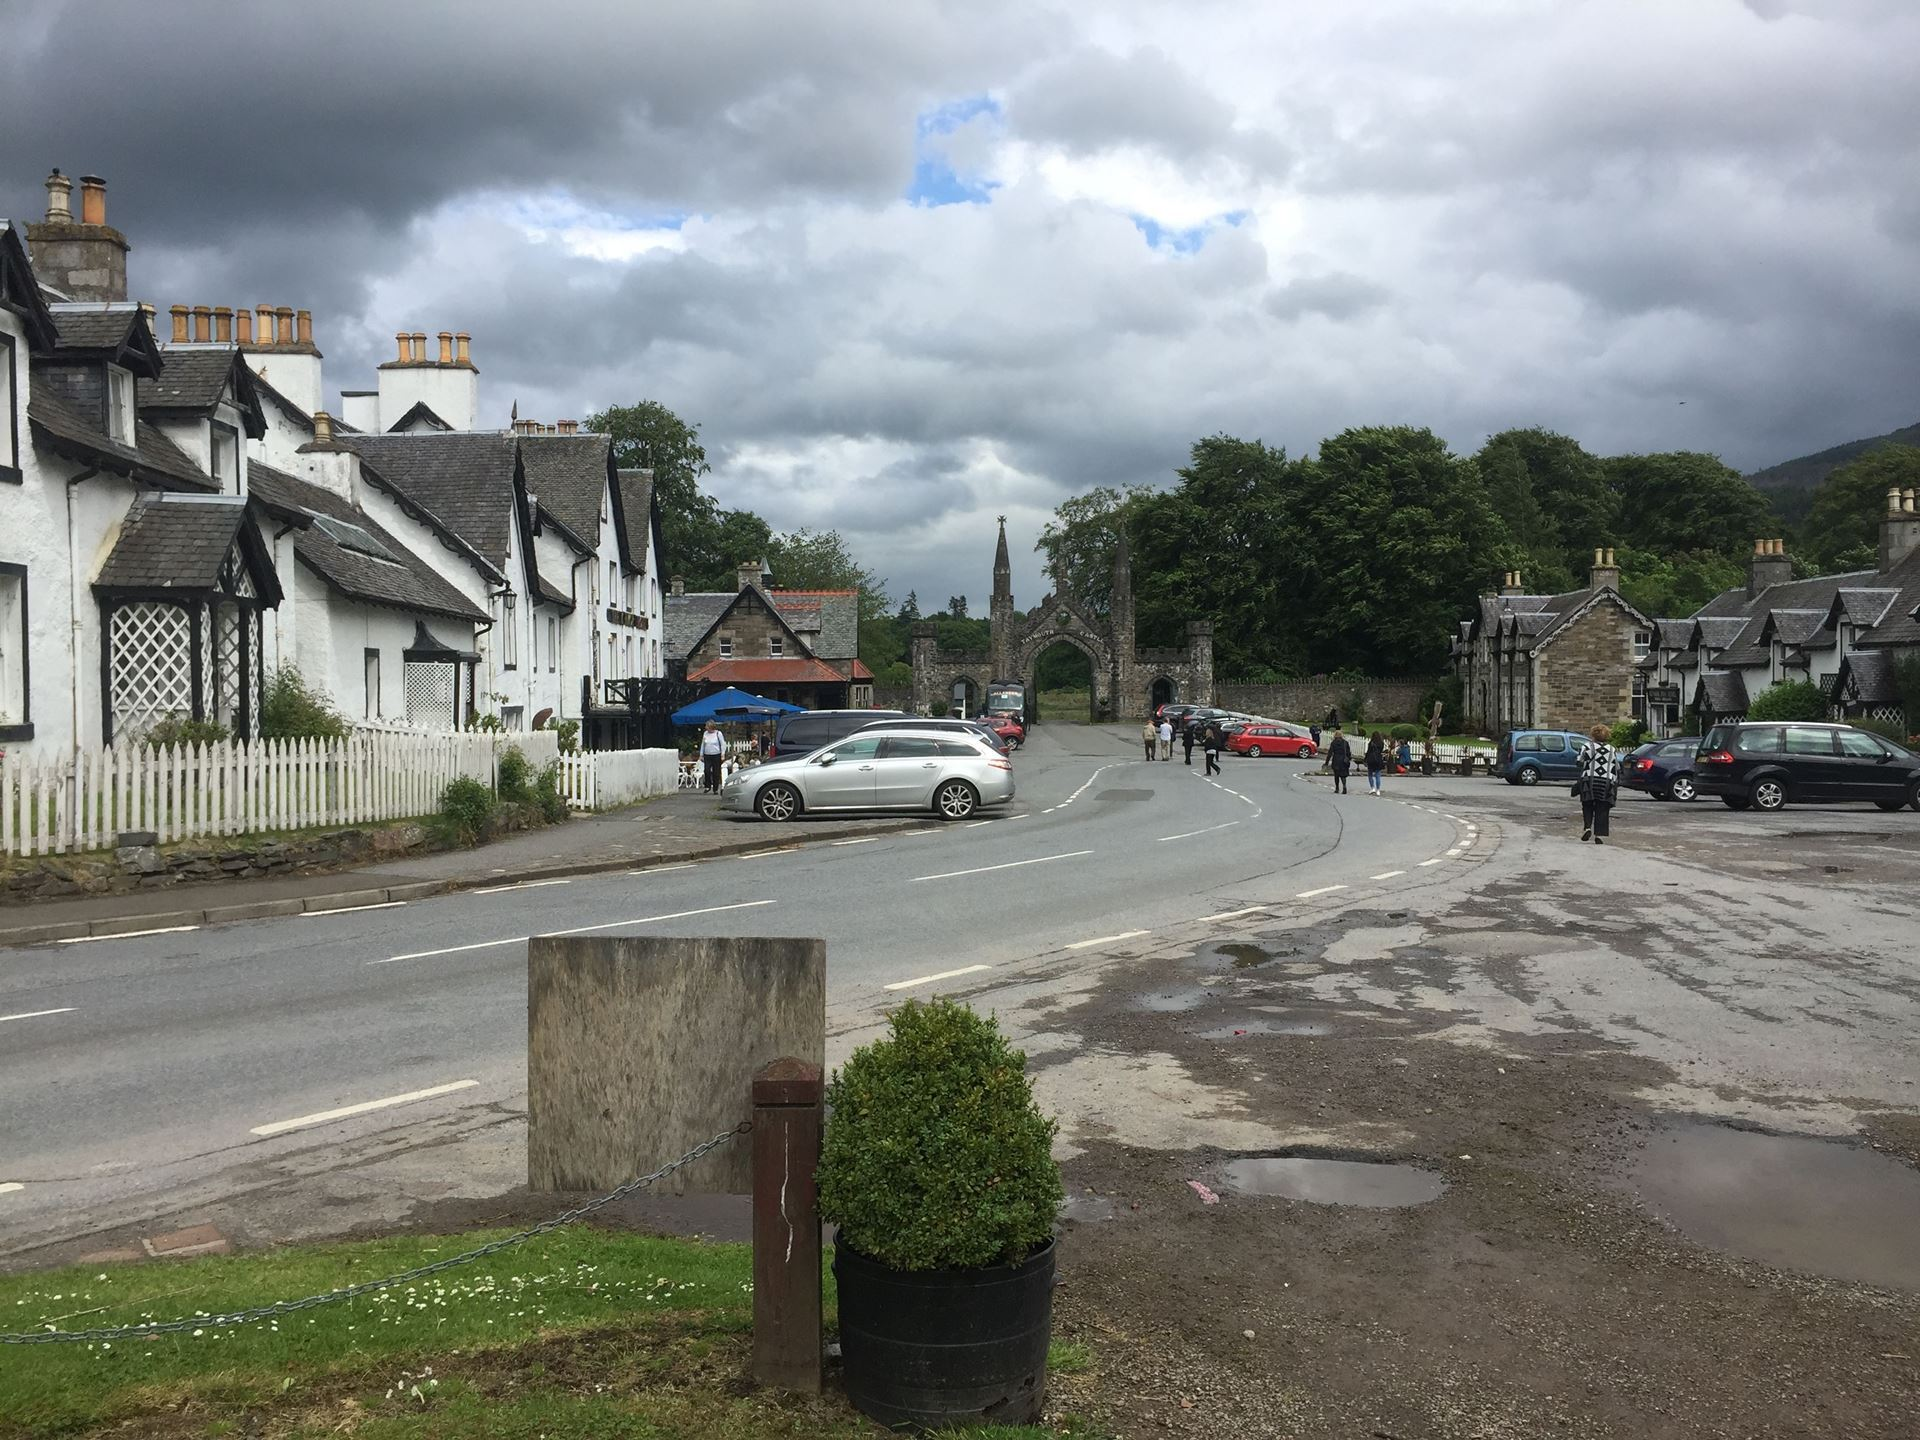 Kenmore, a model estate village at entrance to Taymouth Castle at the eastern end of Loch Tay, an example of the planned villages built for tourists by estates across the highlands. A broad square lined with estate cottages and an estate inn.